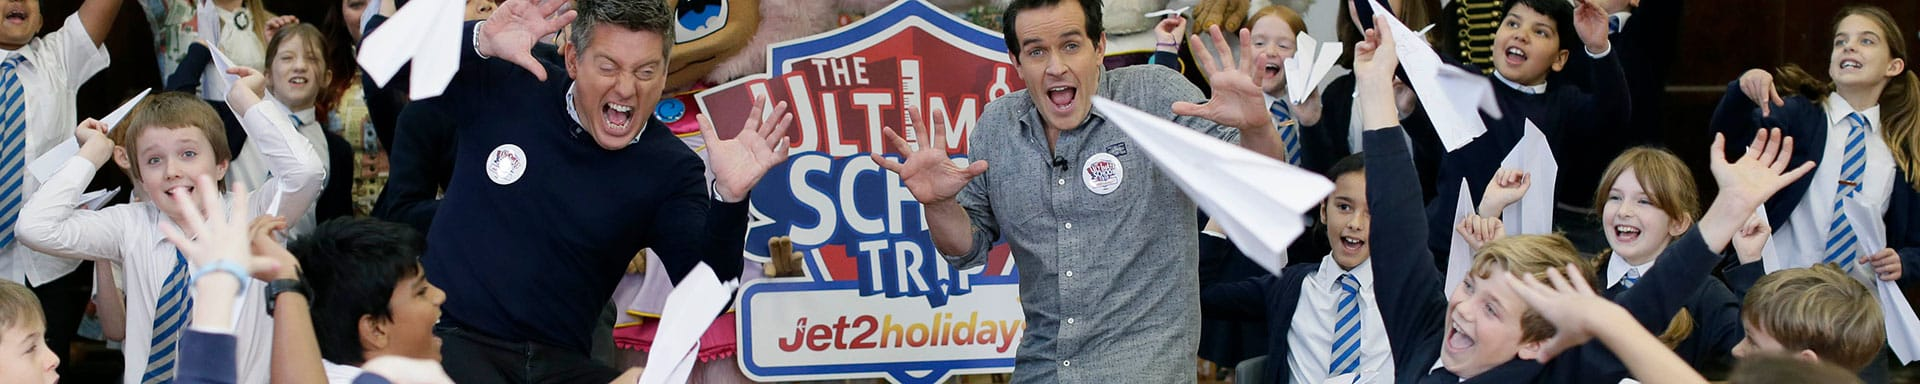 Dick and Dom & Jet2